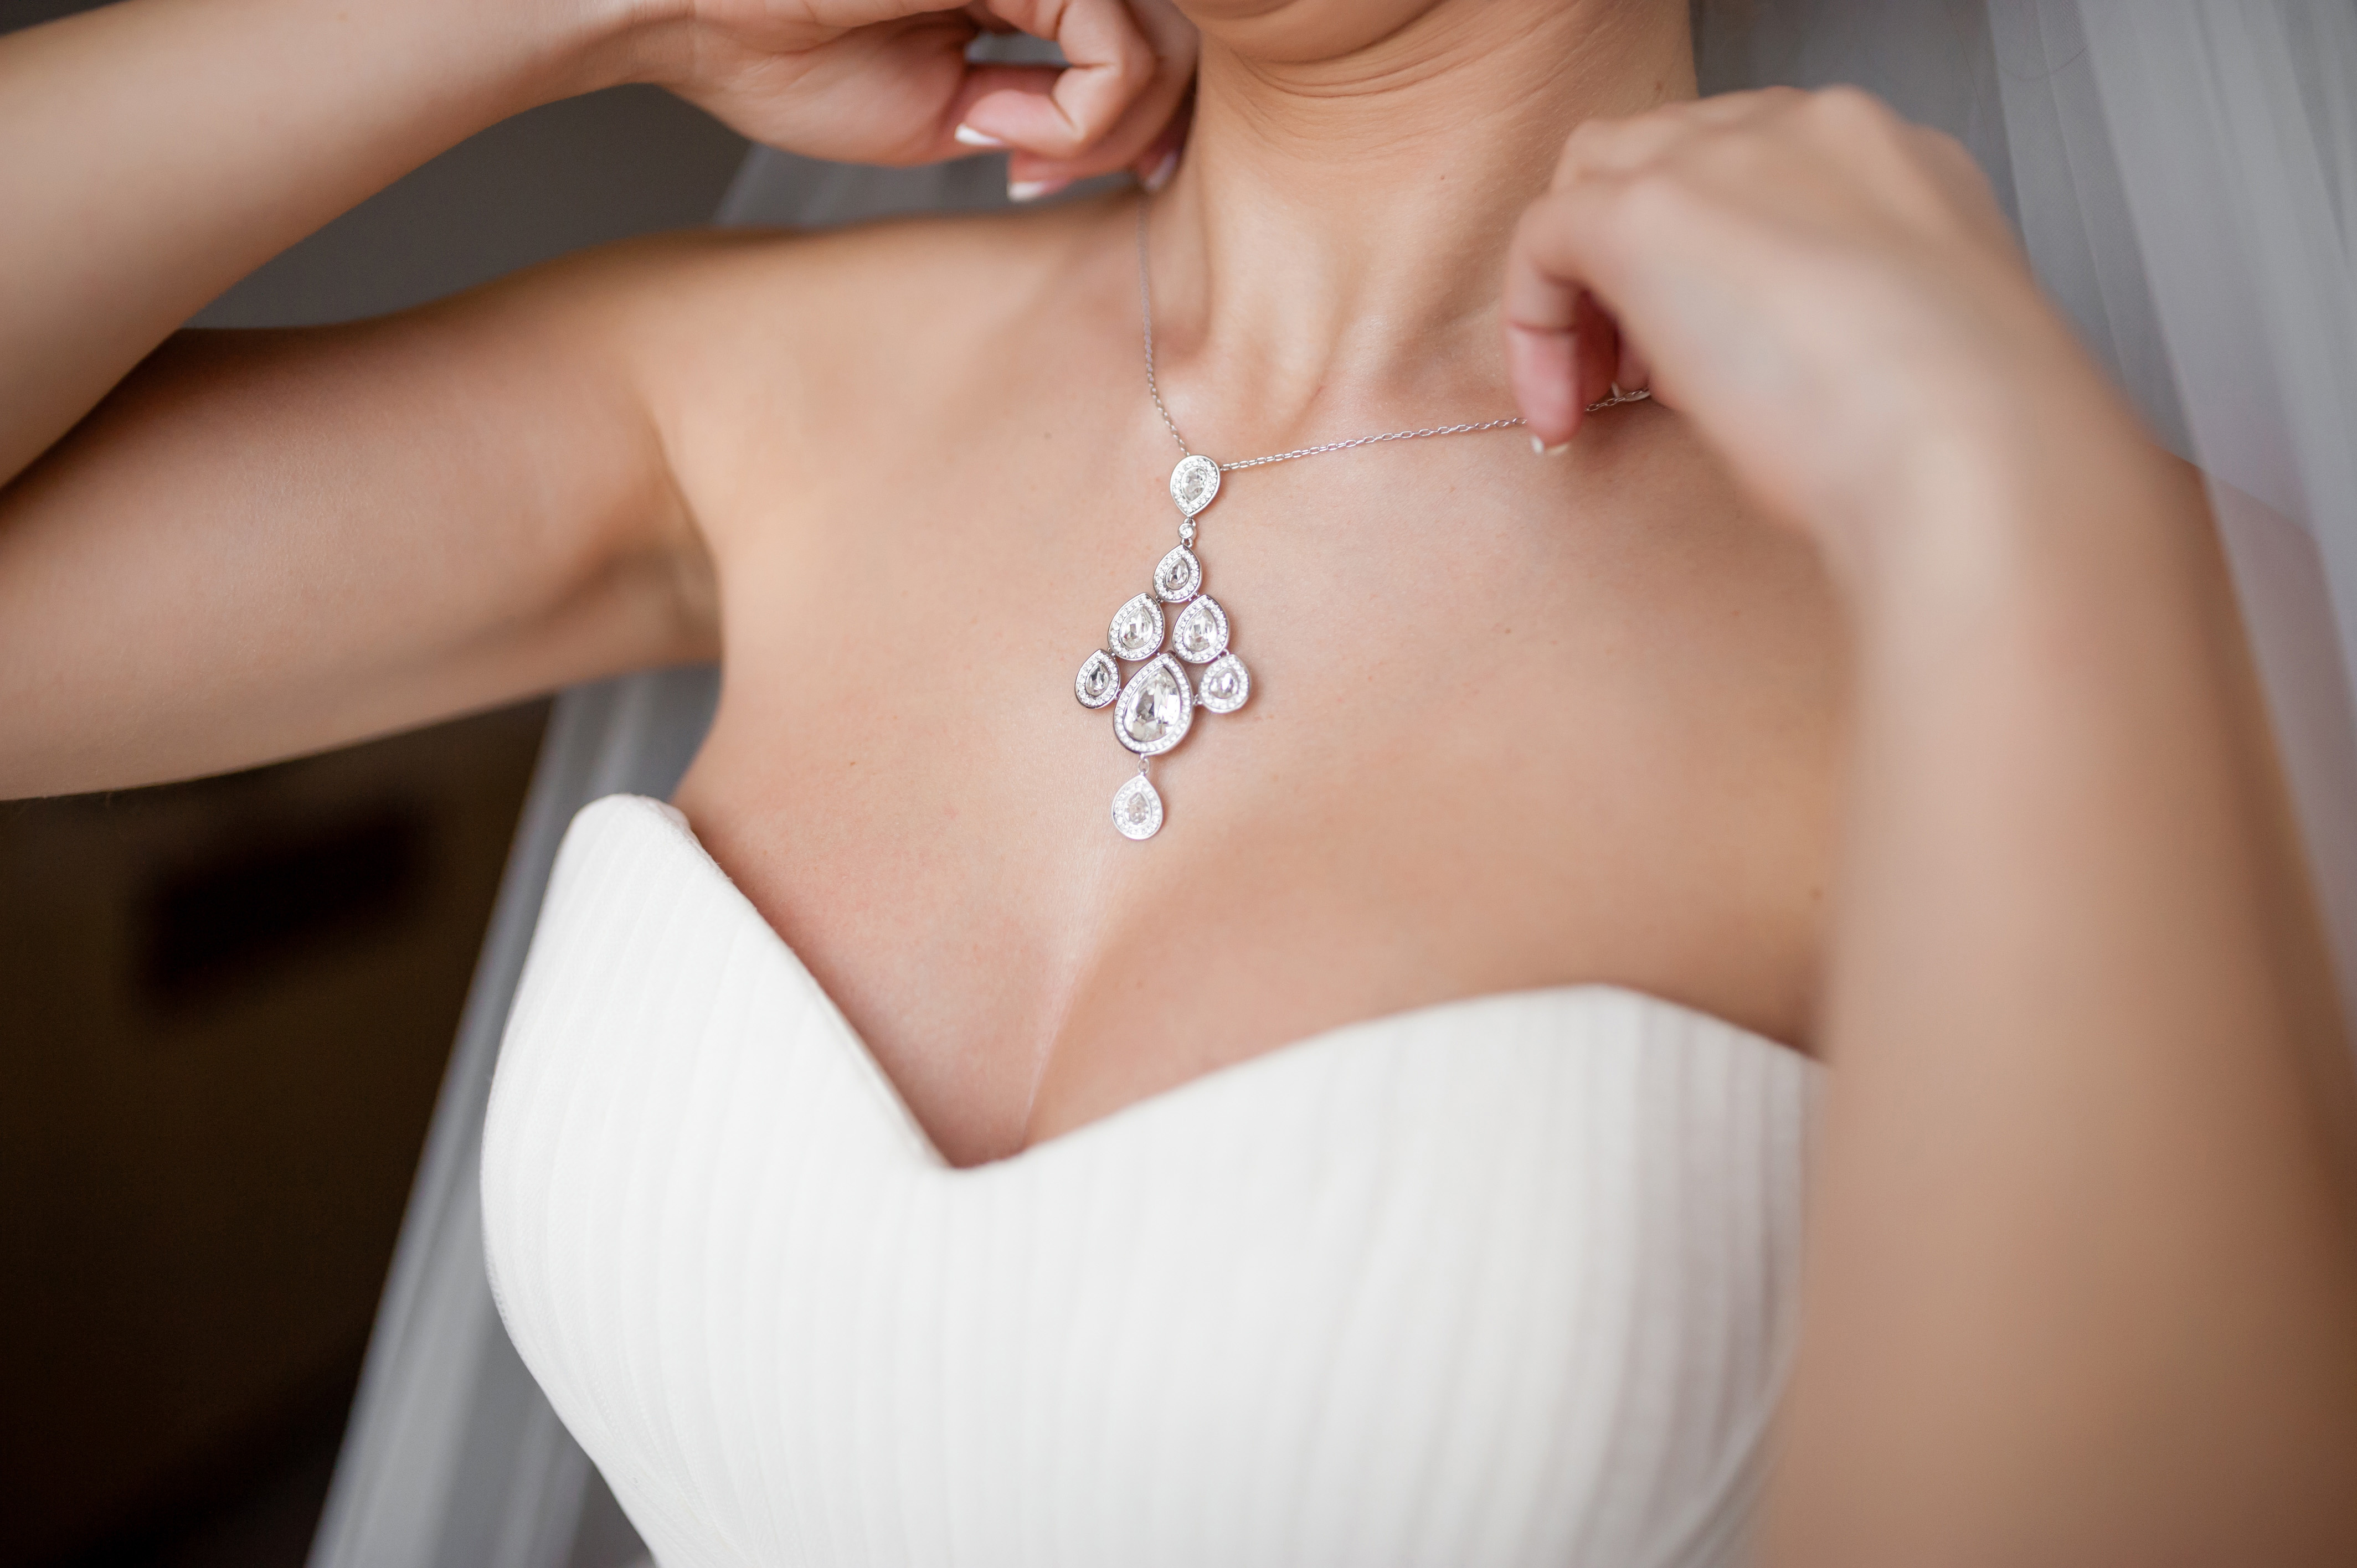 The bride wears a necklace.